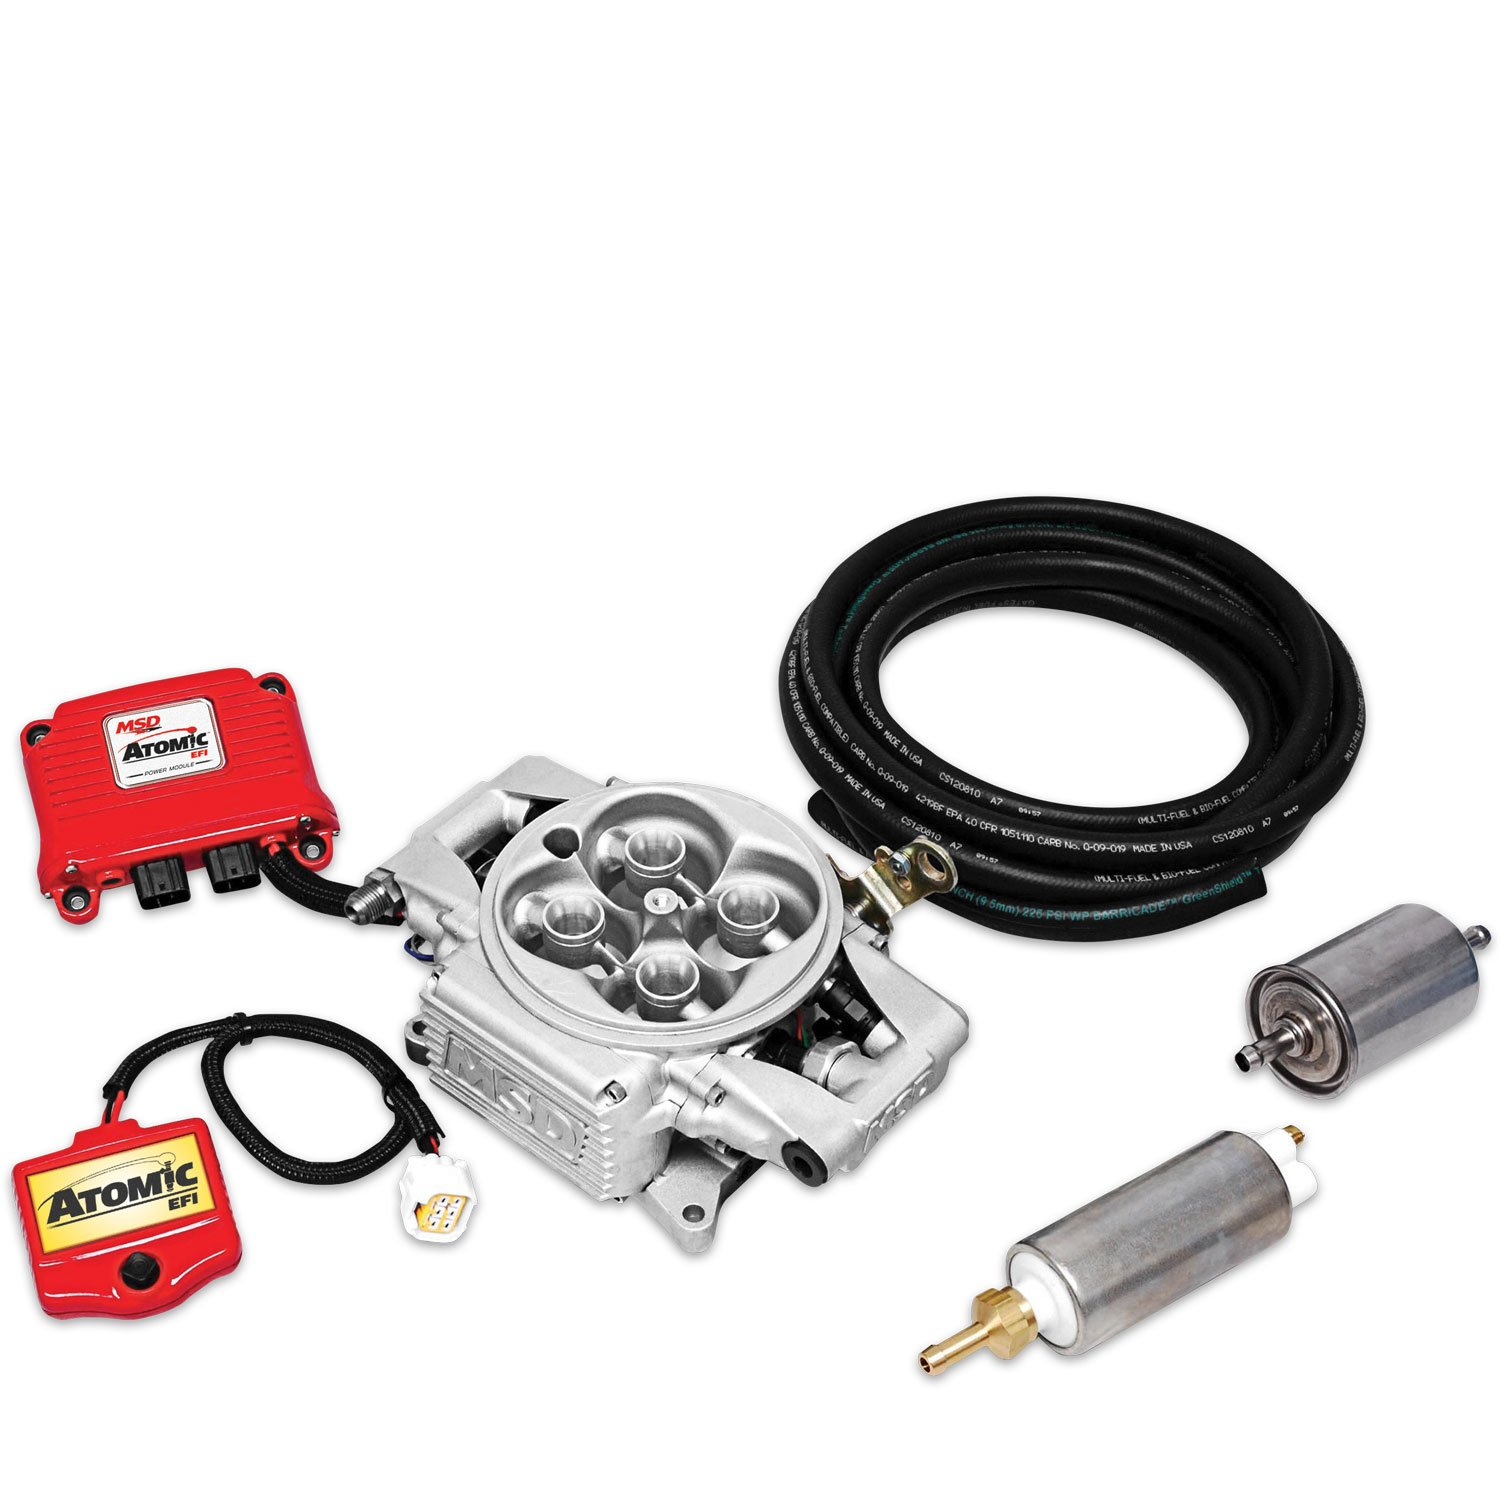 Atomic 2900 Efi Master Kit 4 Starter Wire Diagram Image